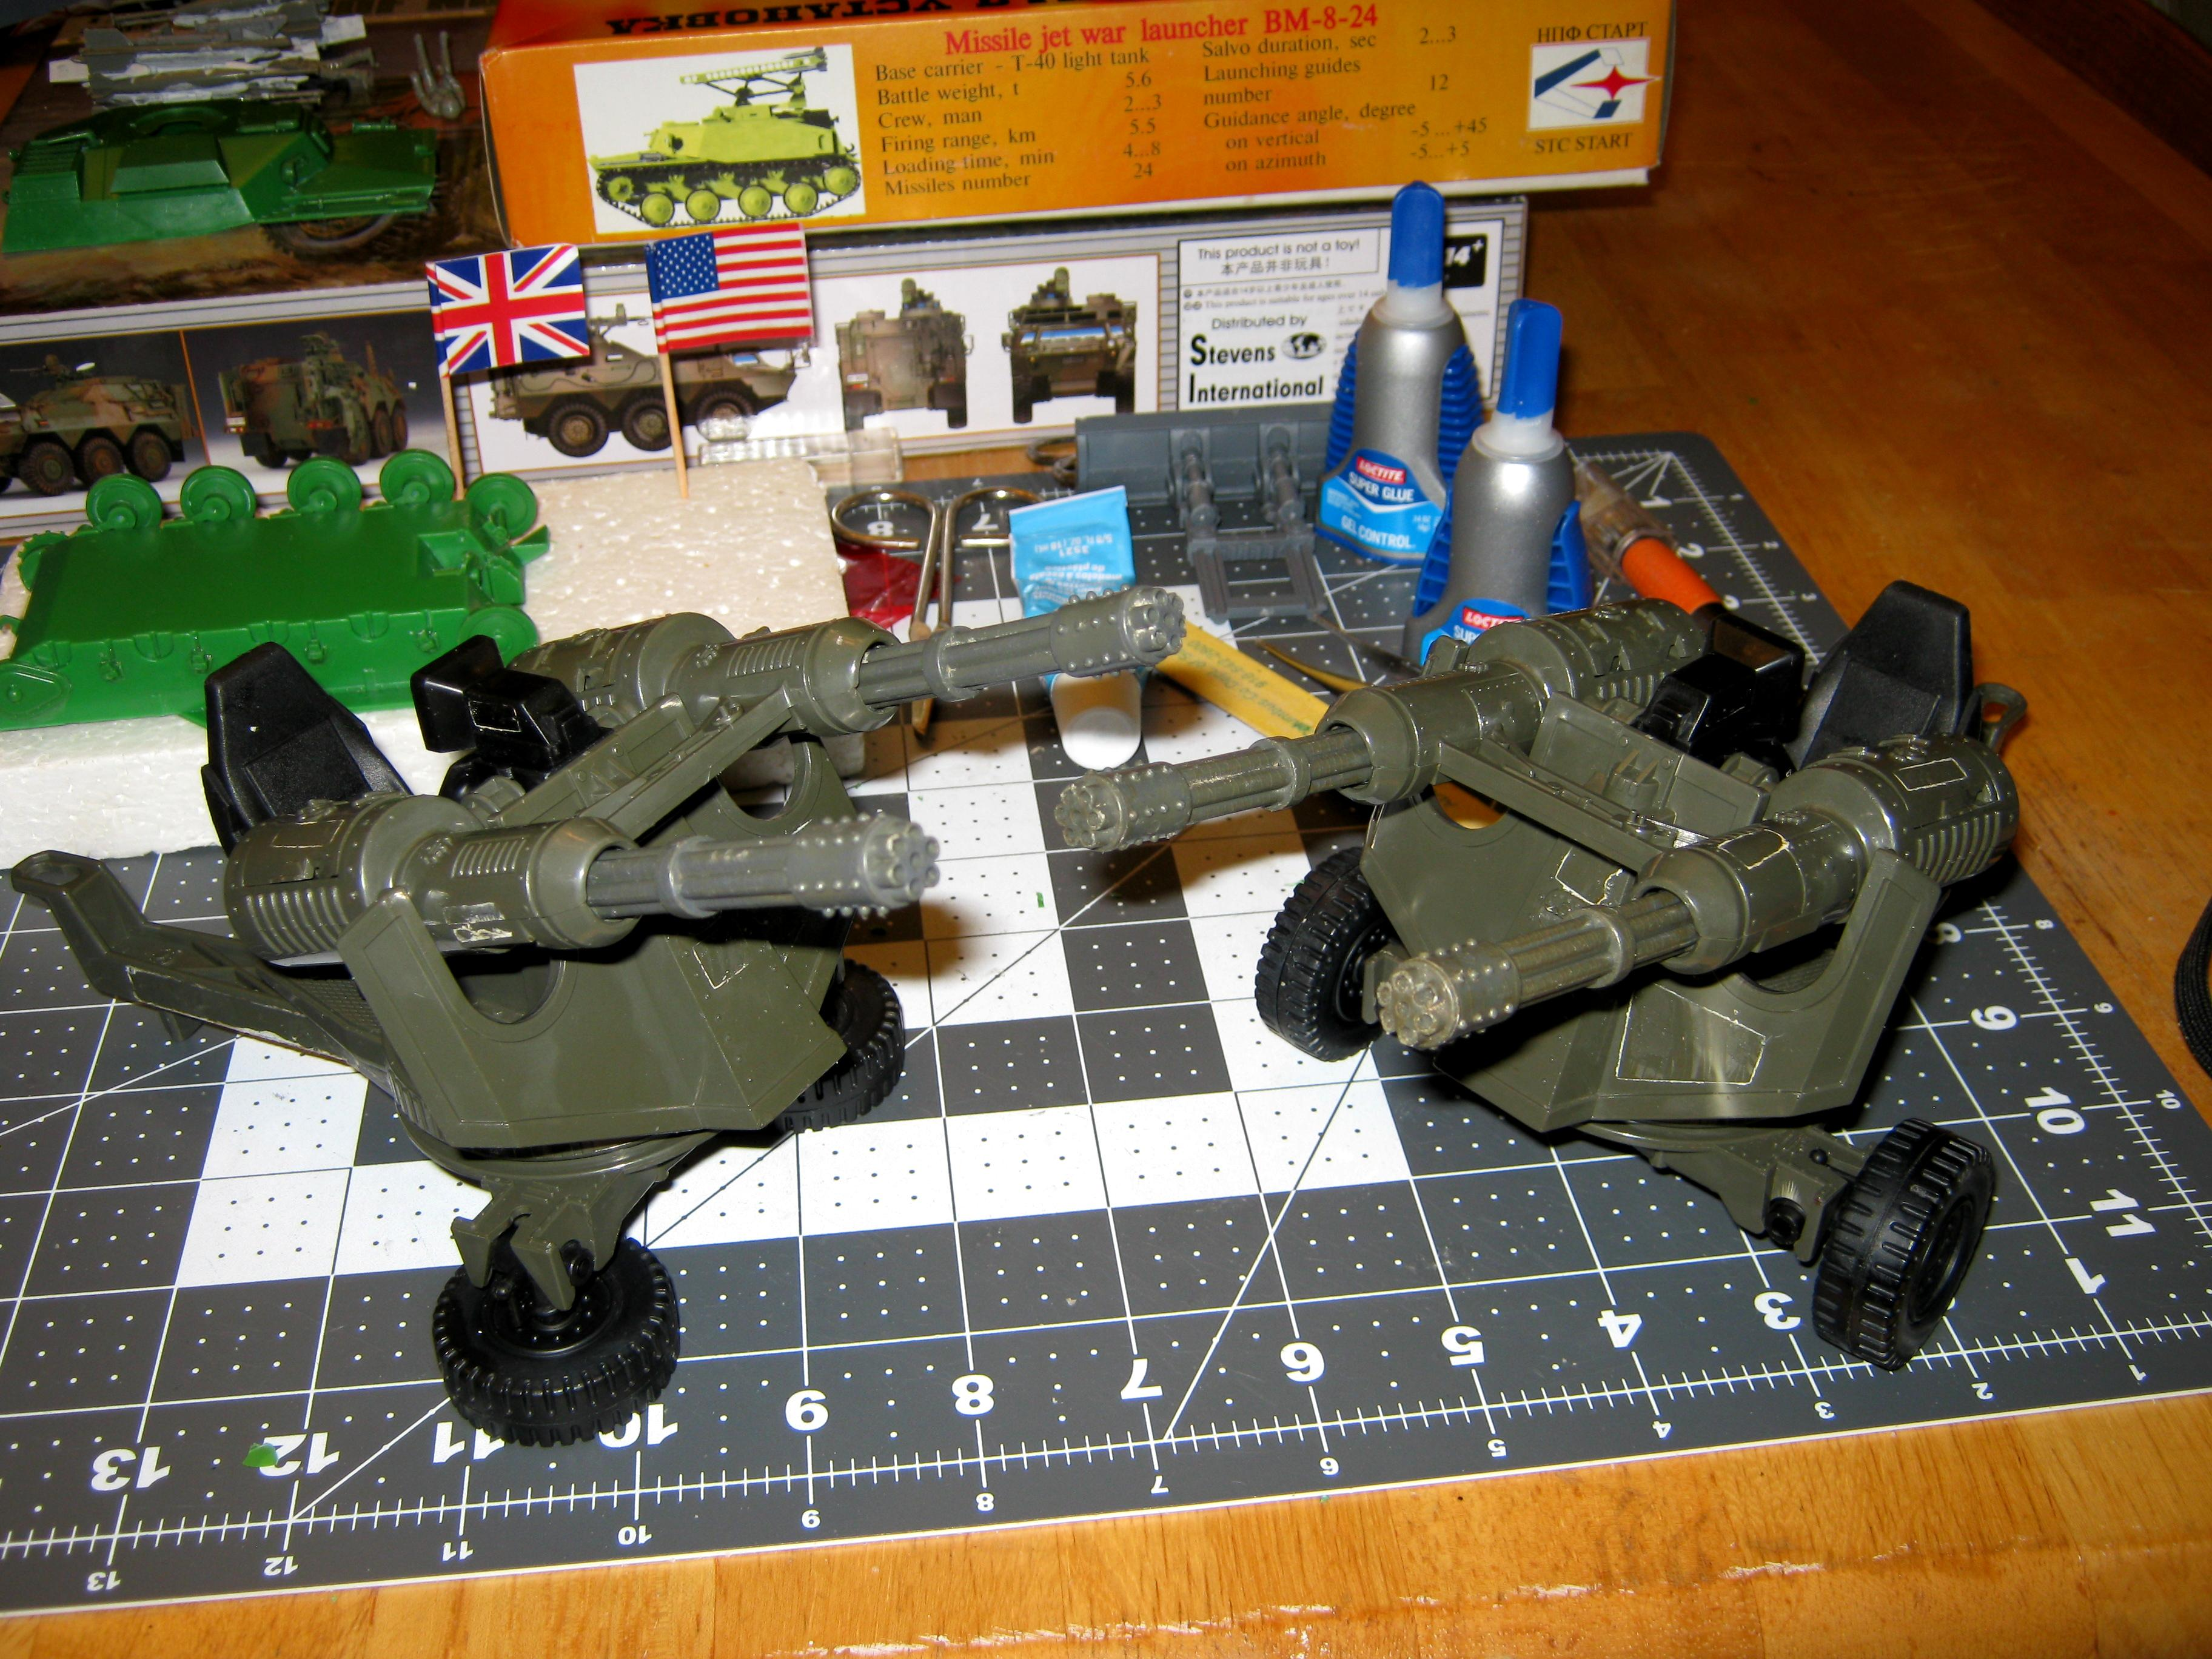 Anti-aircraft, Artillery, Conversion, G.i. Joe, Toy